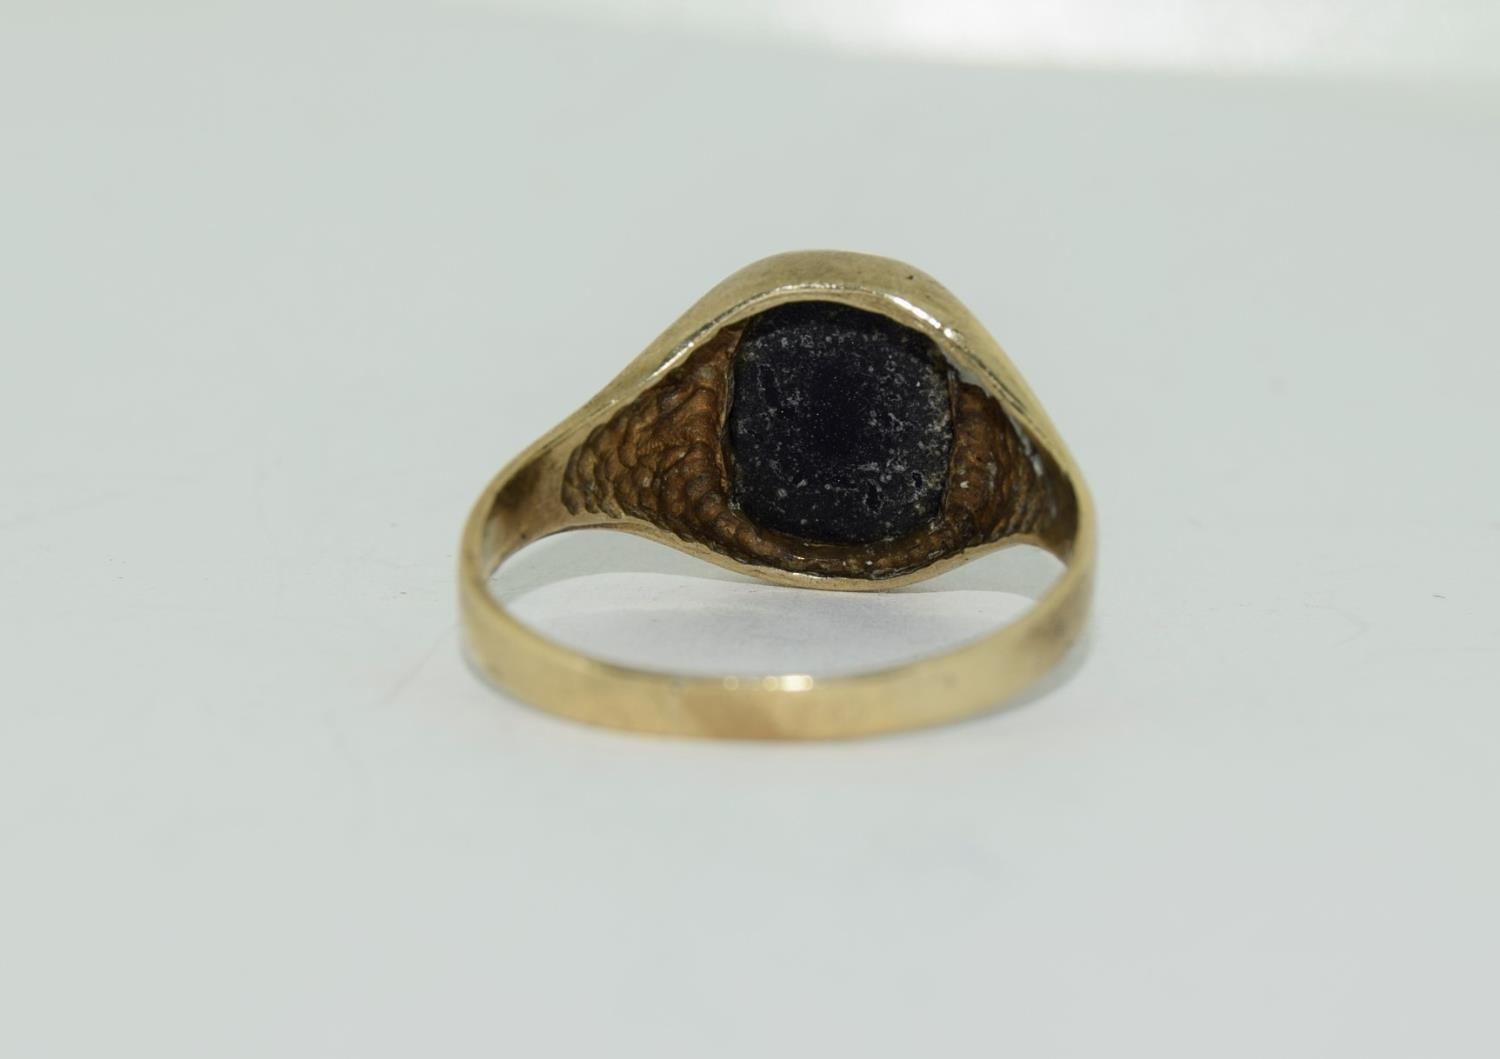 9ct gold gents sygnet ring set with unpolished amethyst centre stone size Q - Image 7 of 12